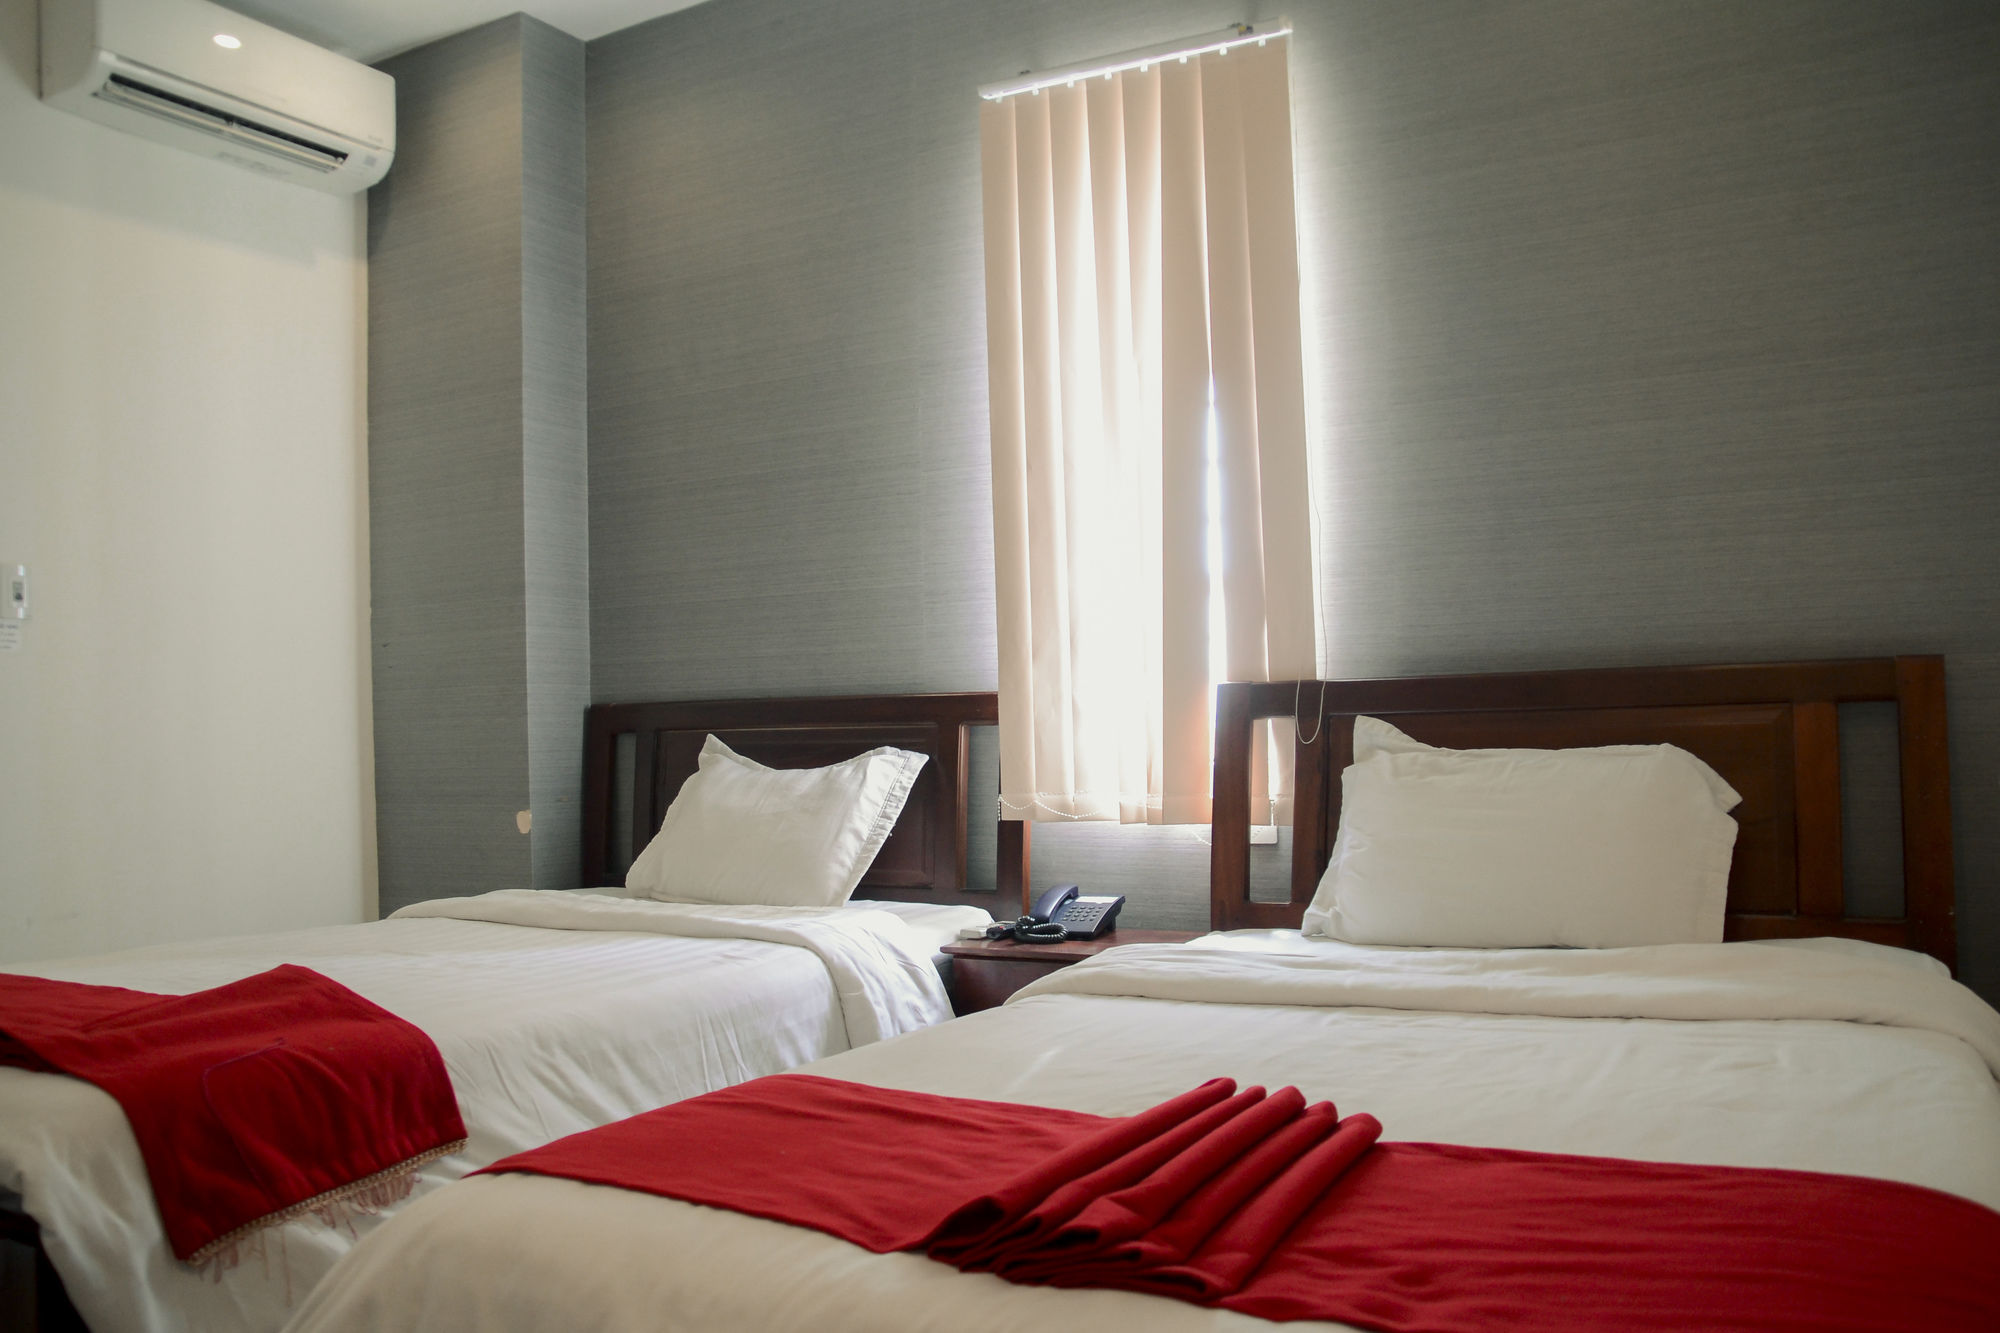 Gallery image of Thanh Hien Hotel